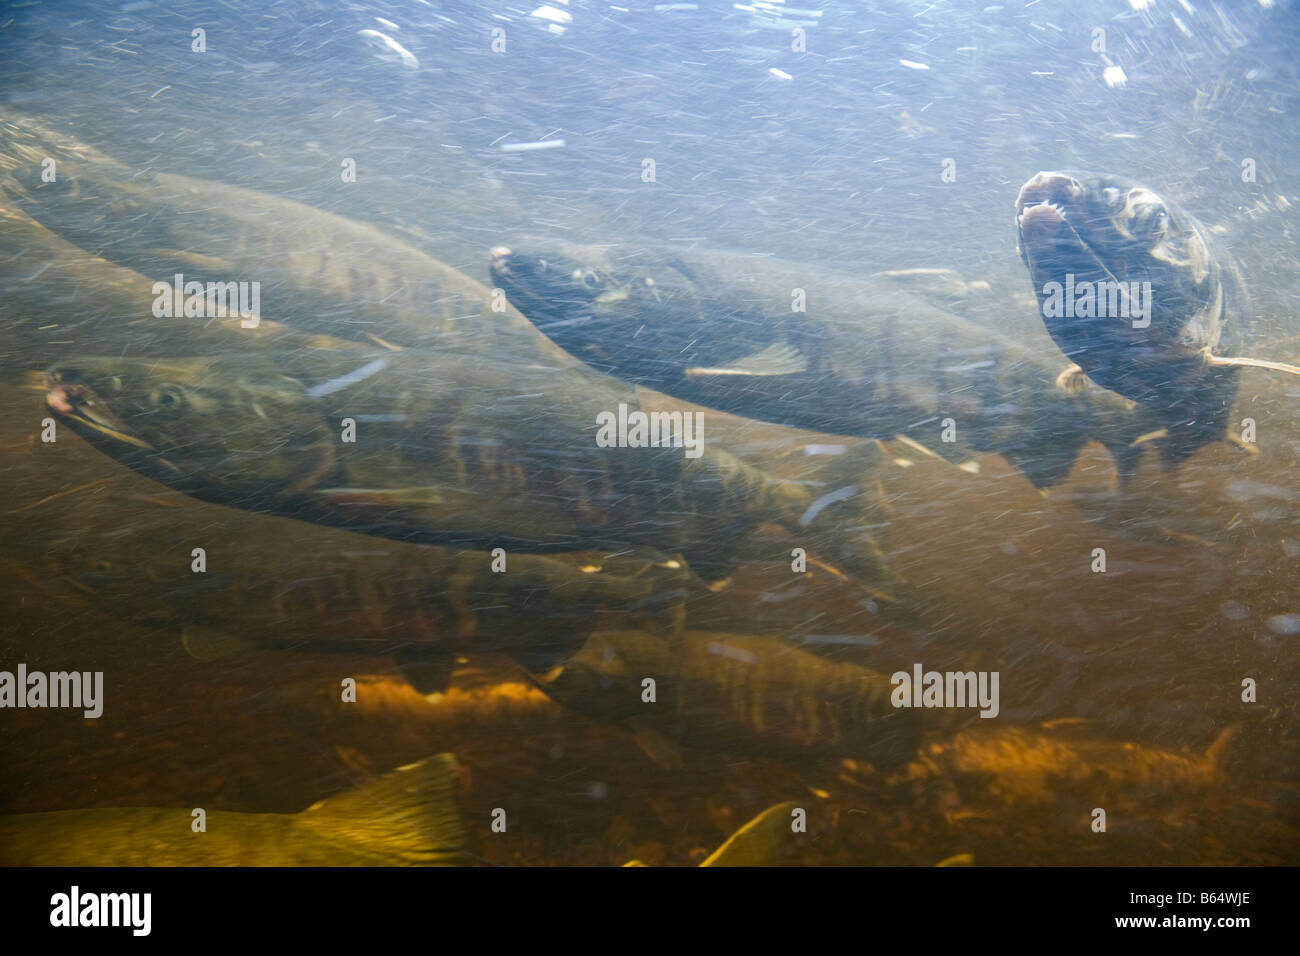 USA Alaska Kake Underwater view of Chum Salmon Oncorhynchus keta spawning in Gunnuck Creek - Stock Image